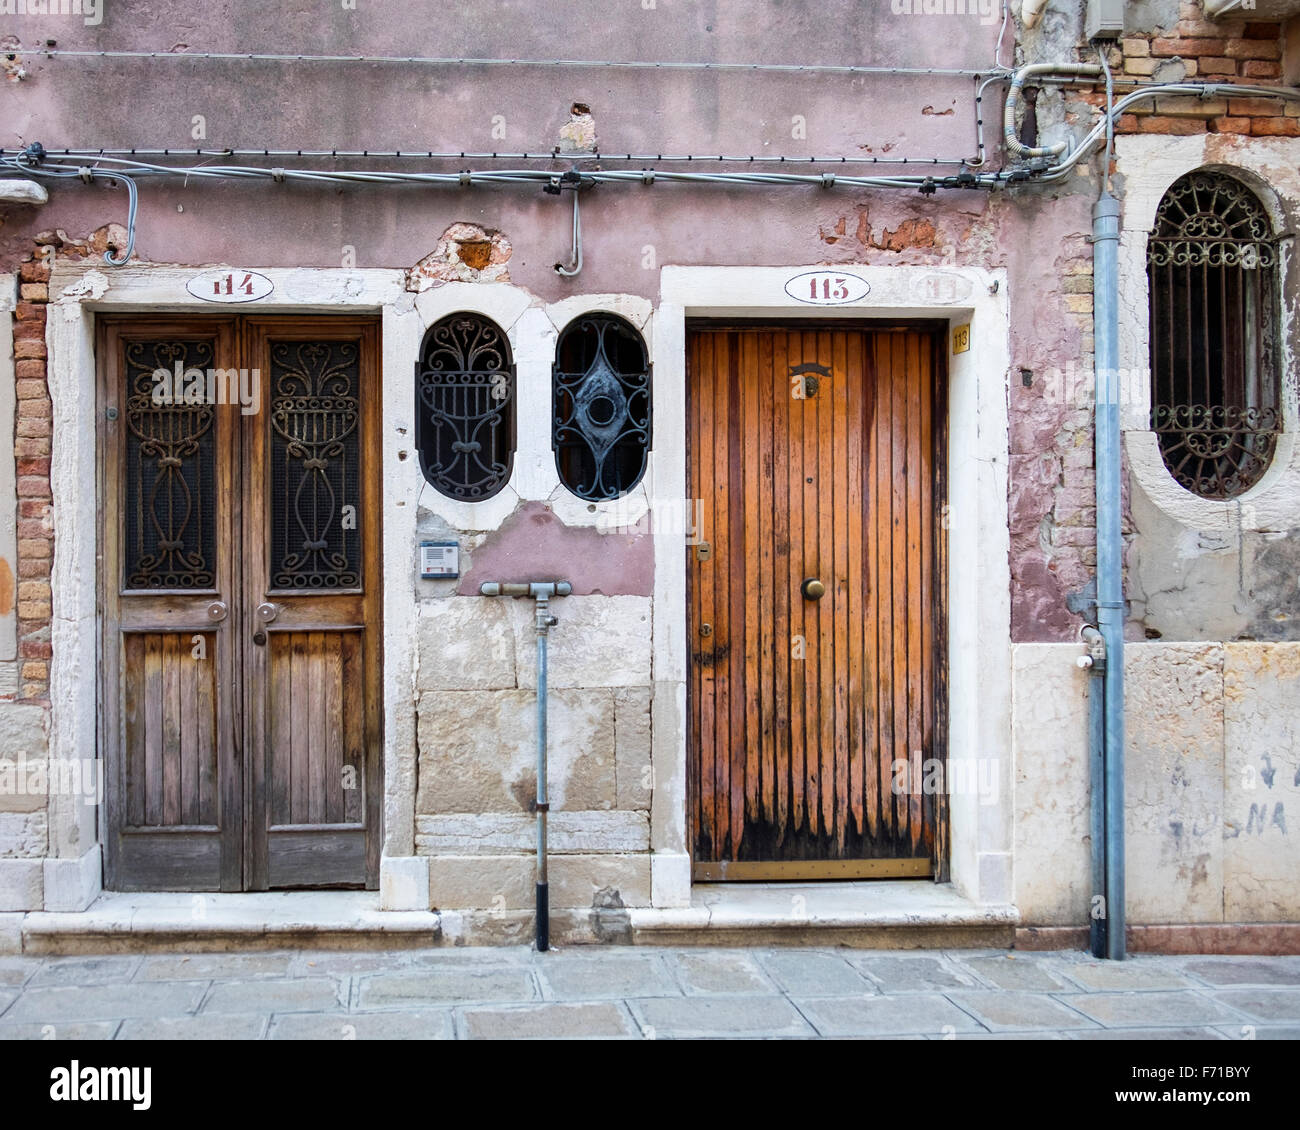 Building exterior detail - weathered wooden doors and external electric wiring - Stock & Wooden Doors Stock Photos u0026 Wooden Doors Stock Images - Alamy